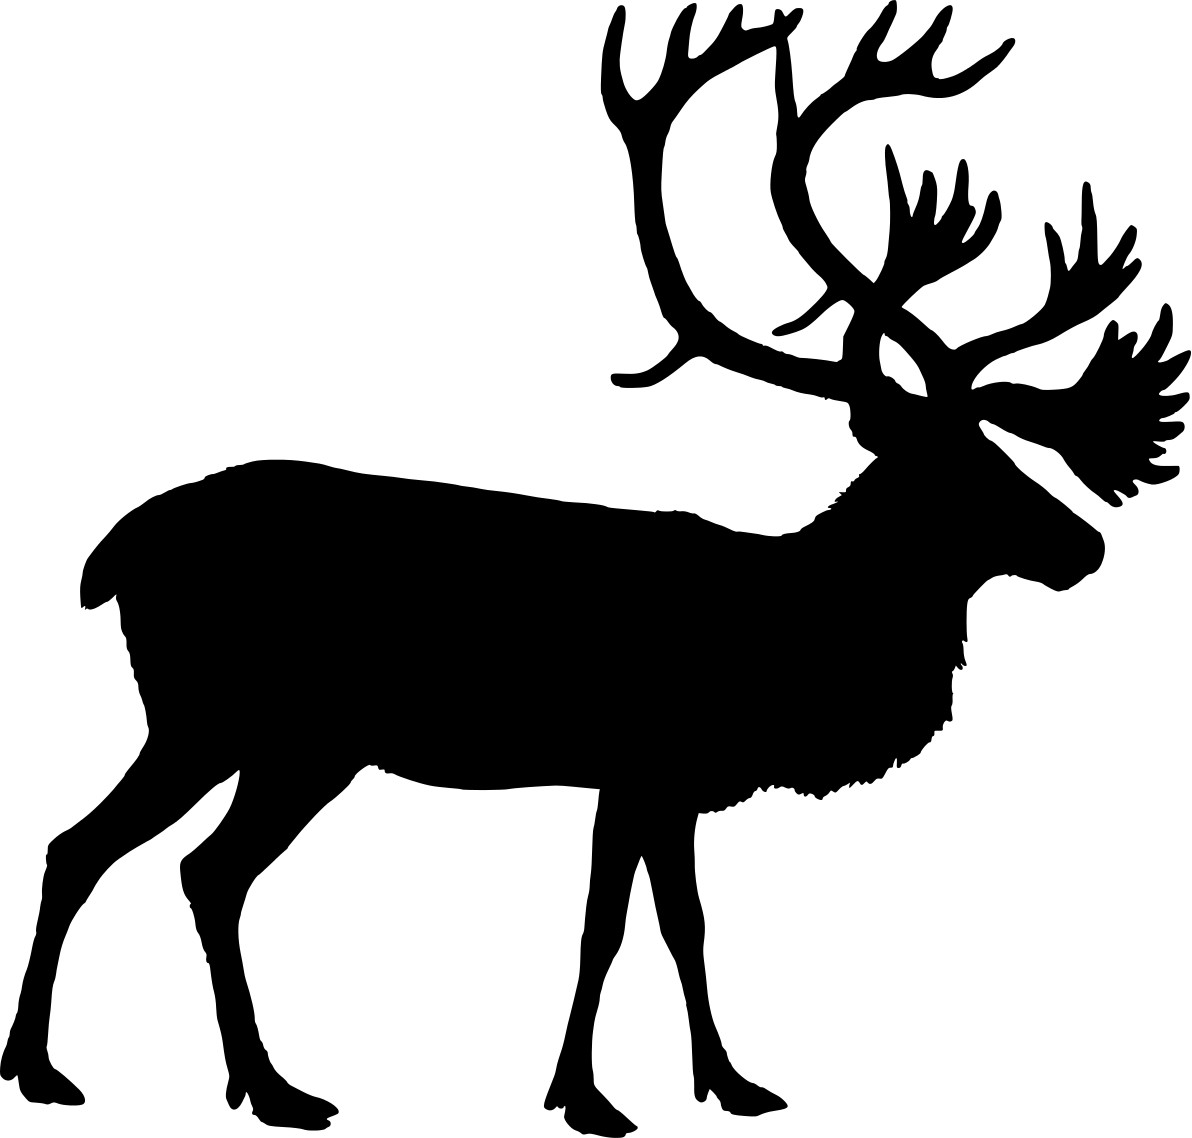 1192x1138 Outline Archives Photomal Com Within Deer Head Silhouette Png